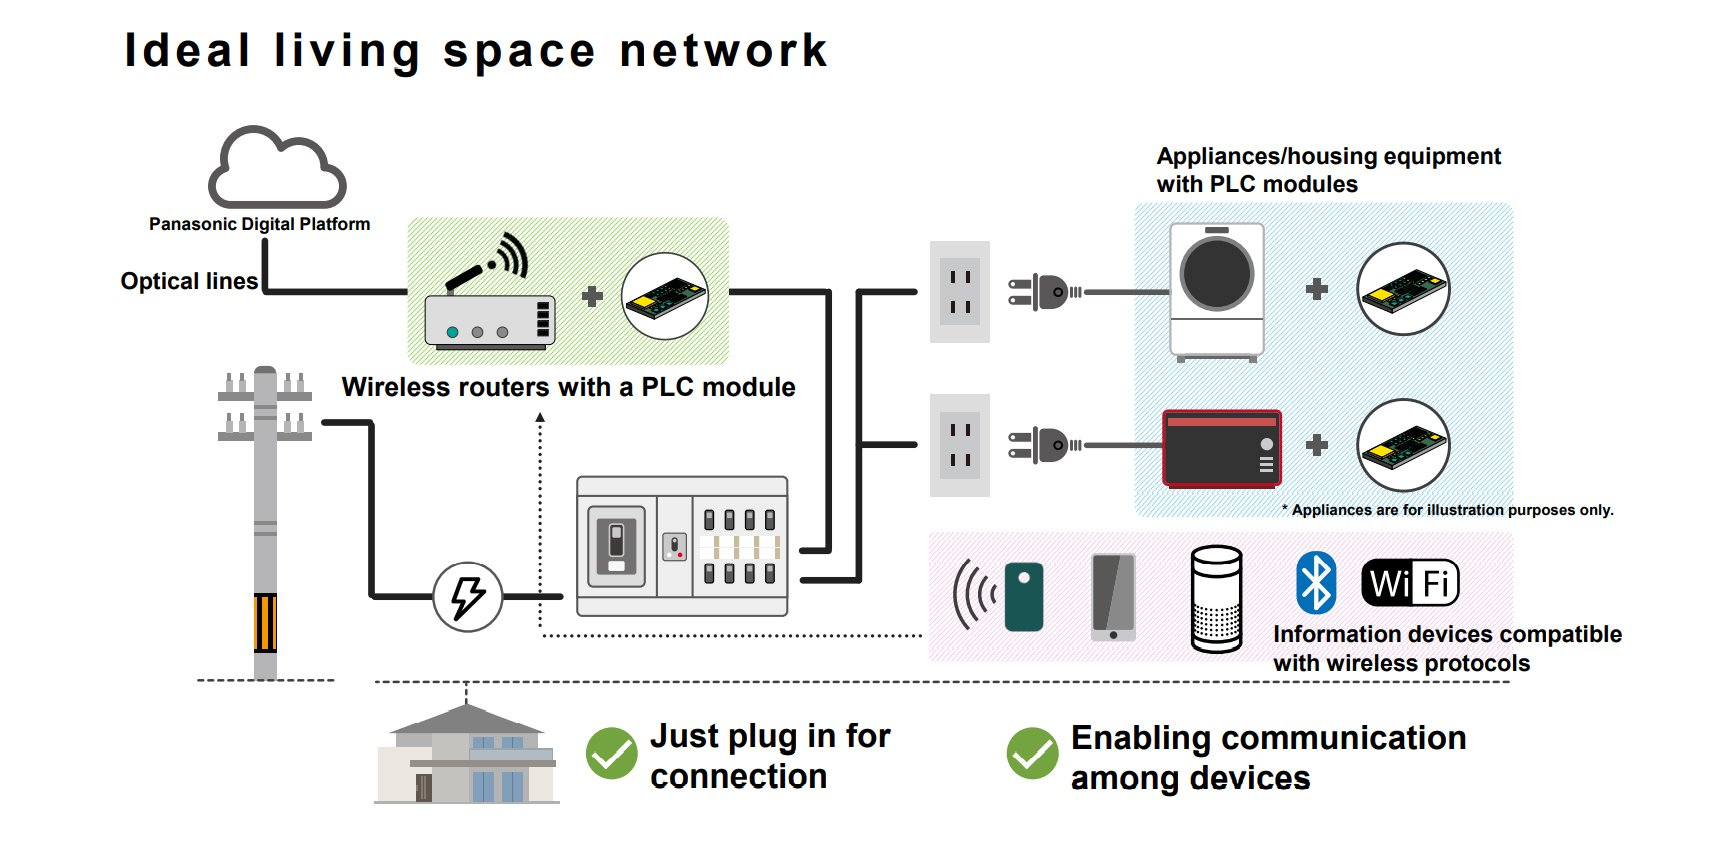 Ideal living space network